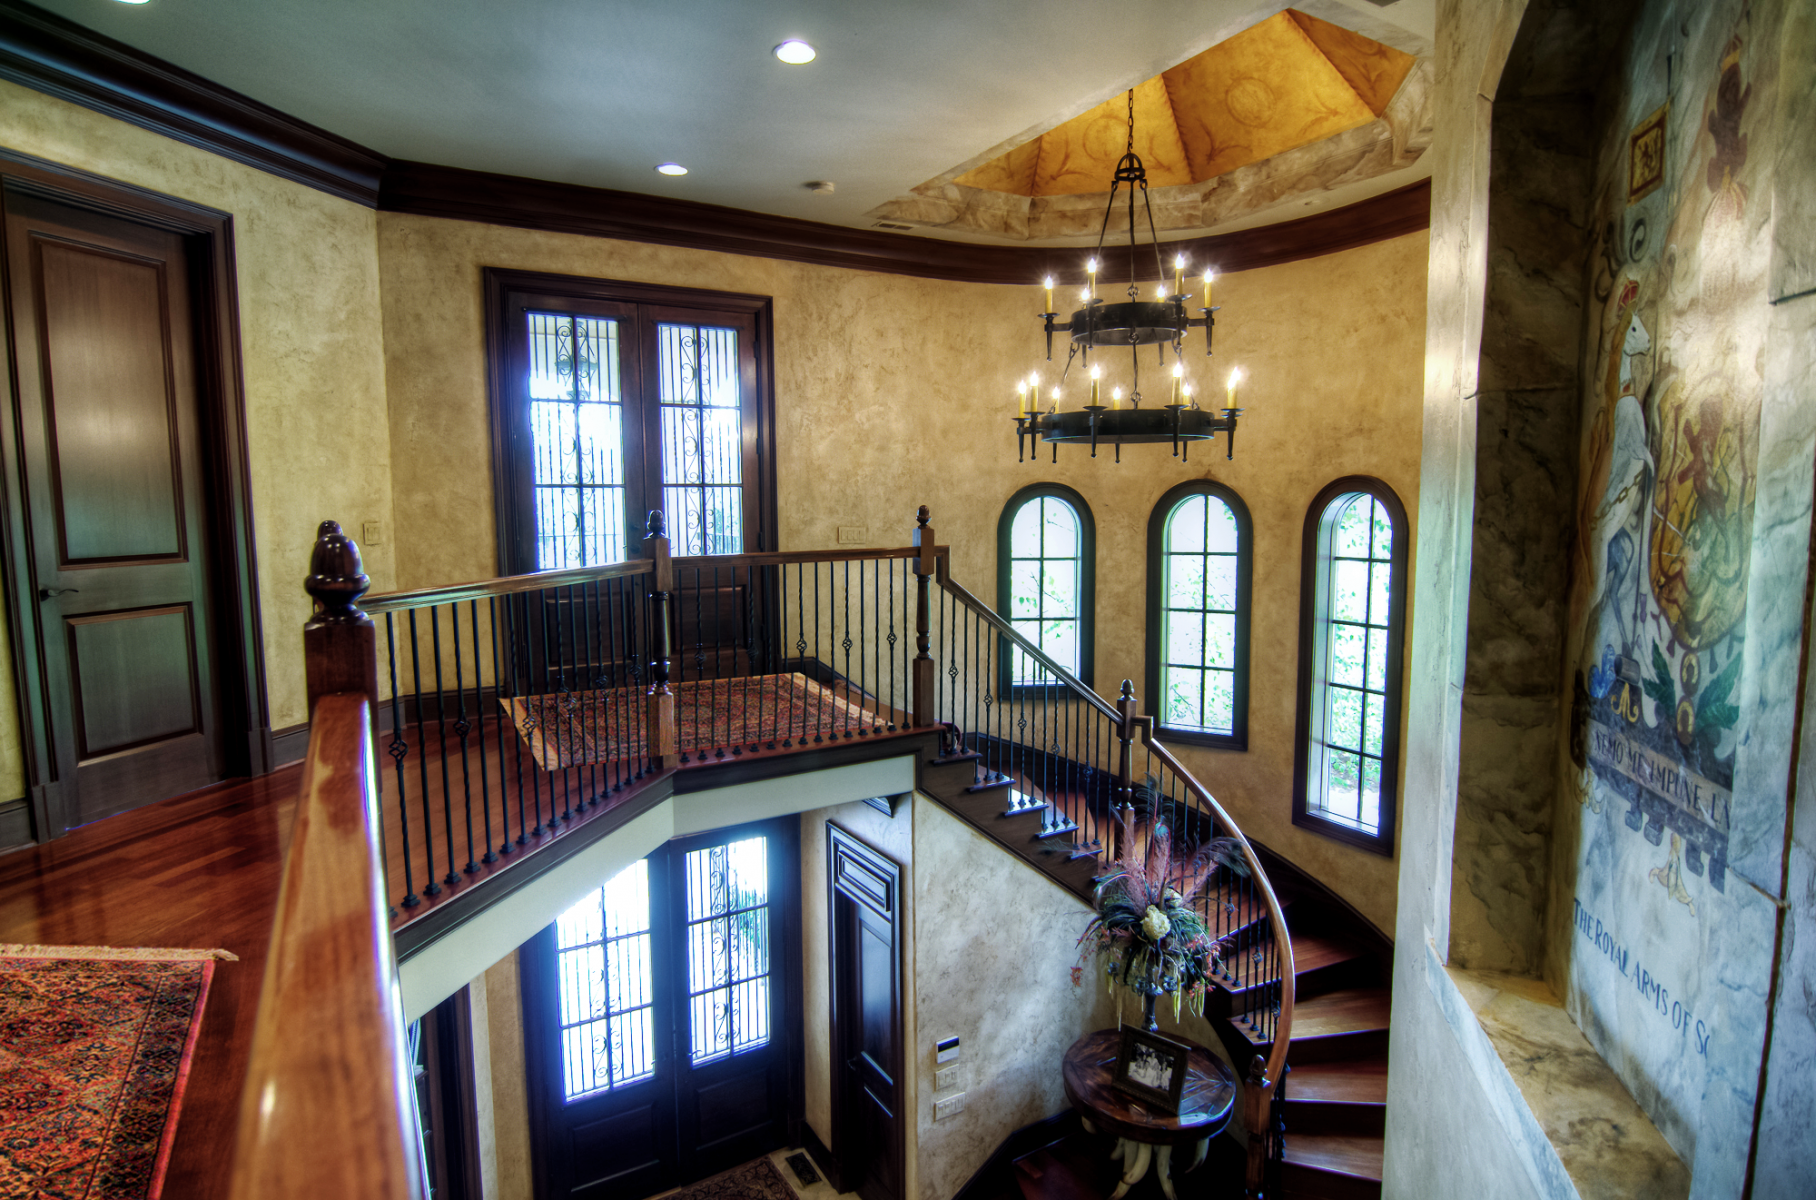 European plaster walls with wood glazed trim custom ceiling mural and marble crest.